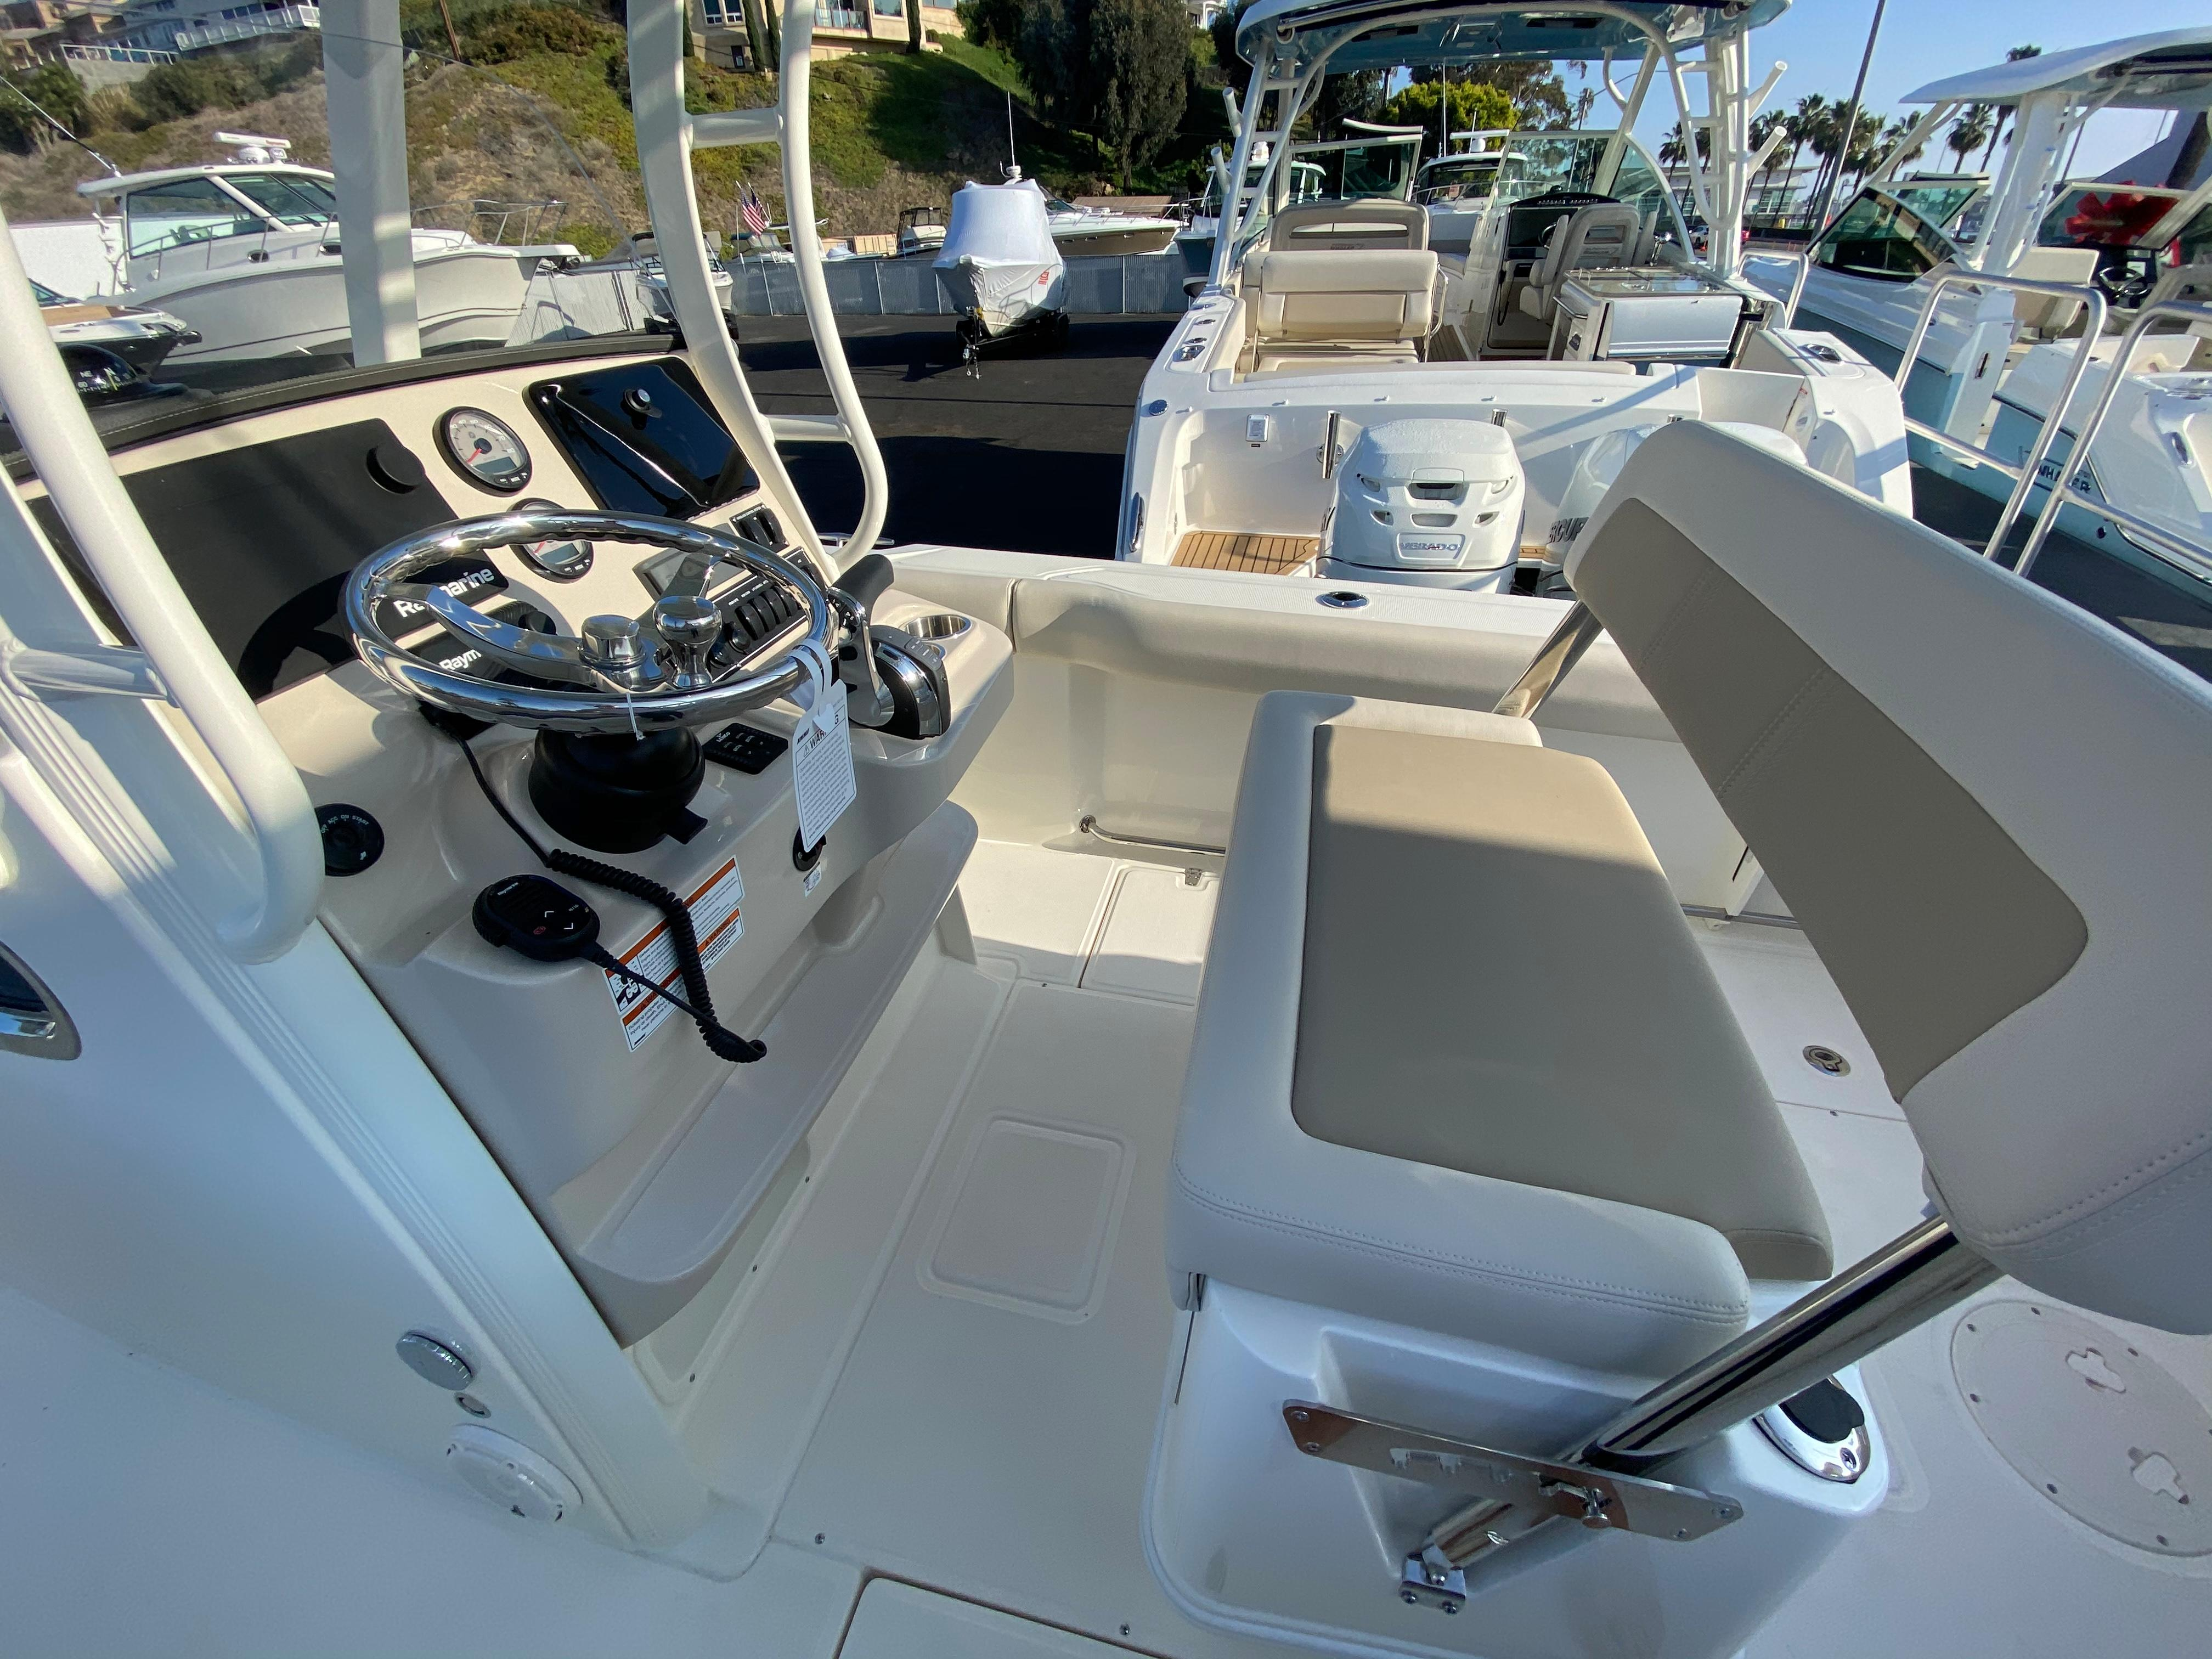 2021 Boston Whaler 230 Outrage #BW1226K inventory image at Sun Country Coastal in Newport Beach